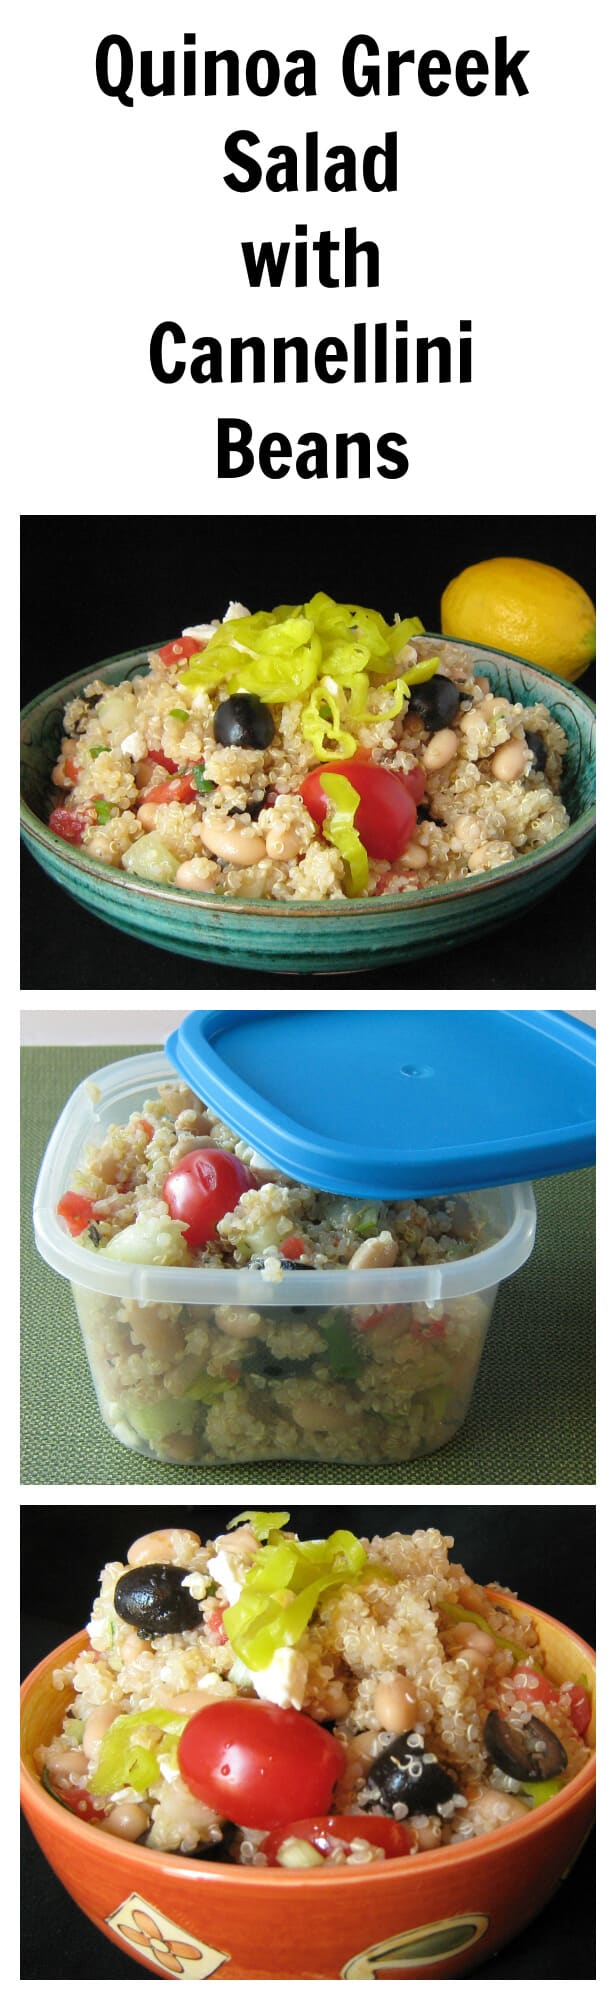 Quinoa Greek Salad with Cannellini Beans